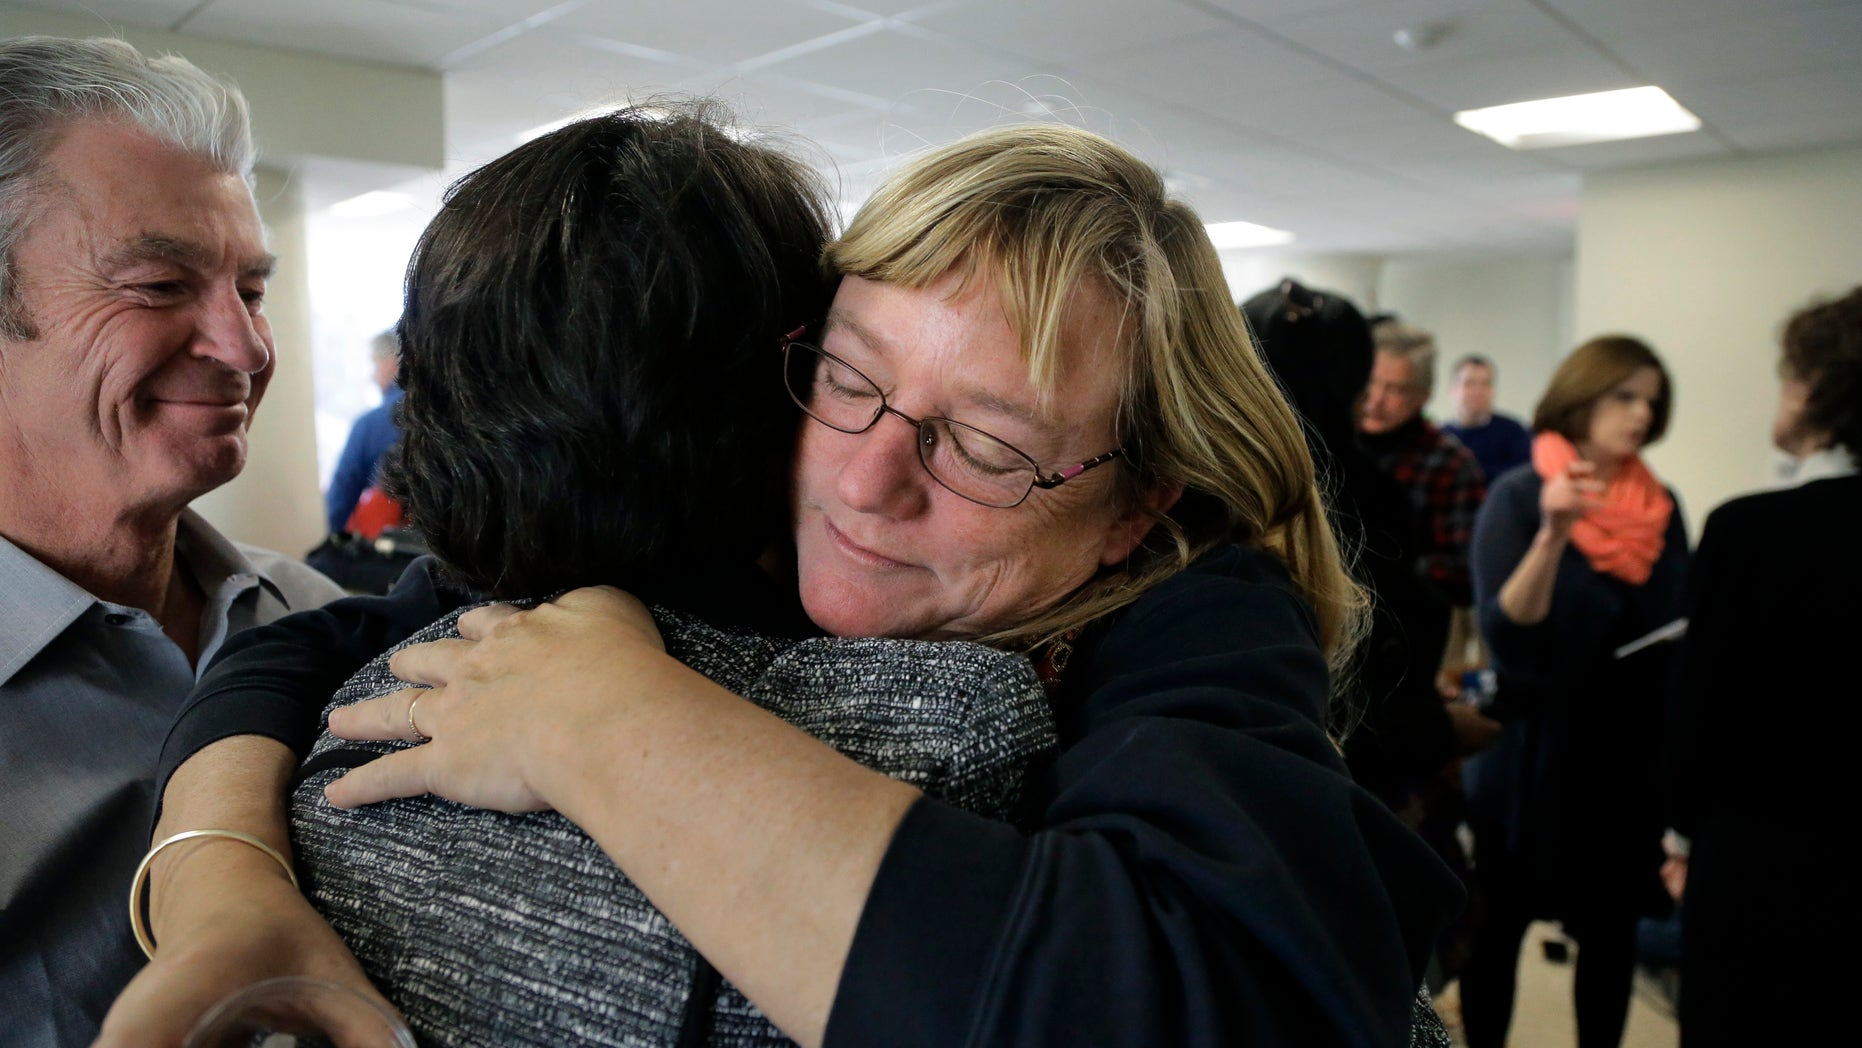 Katie Wales Lovkay, of Granby, Conn., right, who attended St. George's School from 1977-1980, hugs a former classmate, following a news conference, Tuesday, Jan. 5, 2016, in Boston. Former students of the prestigious boarding school in Middletown, R.I., are calling for an independent investigation into sexual abuse that they say spanned three decades and involved at least seven former staff members. Lovkay claims she was sexually assaulted by the school's now deceased athletic trainer. (AP Photo/Steven Senne)